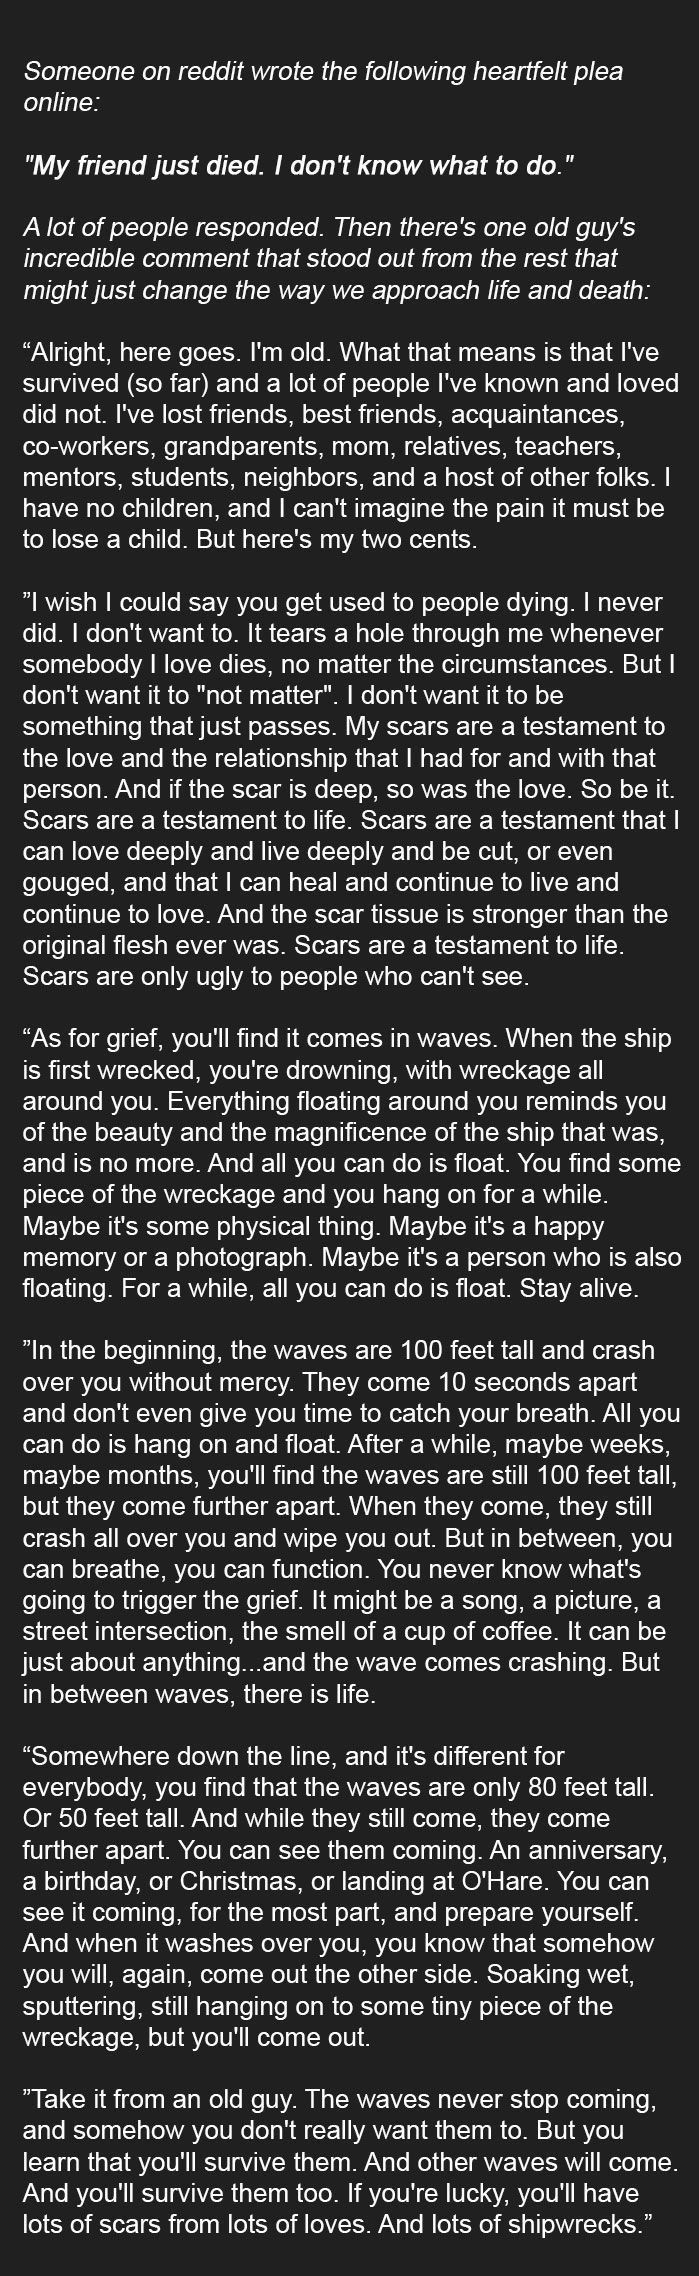 About love, scars, grief and death.